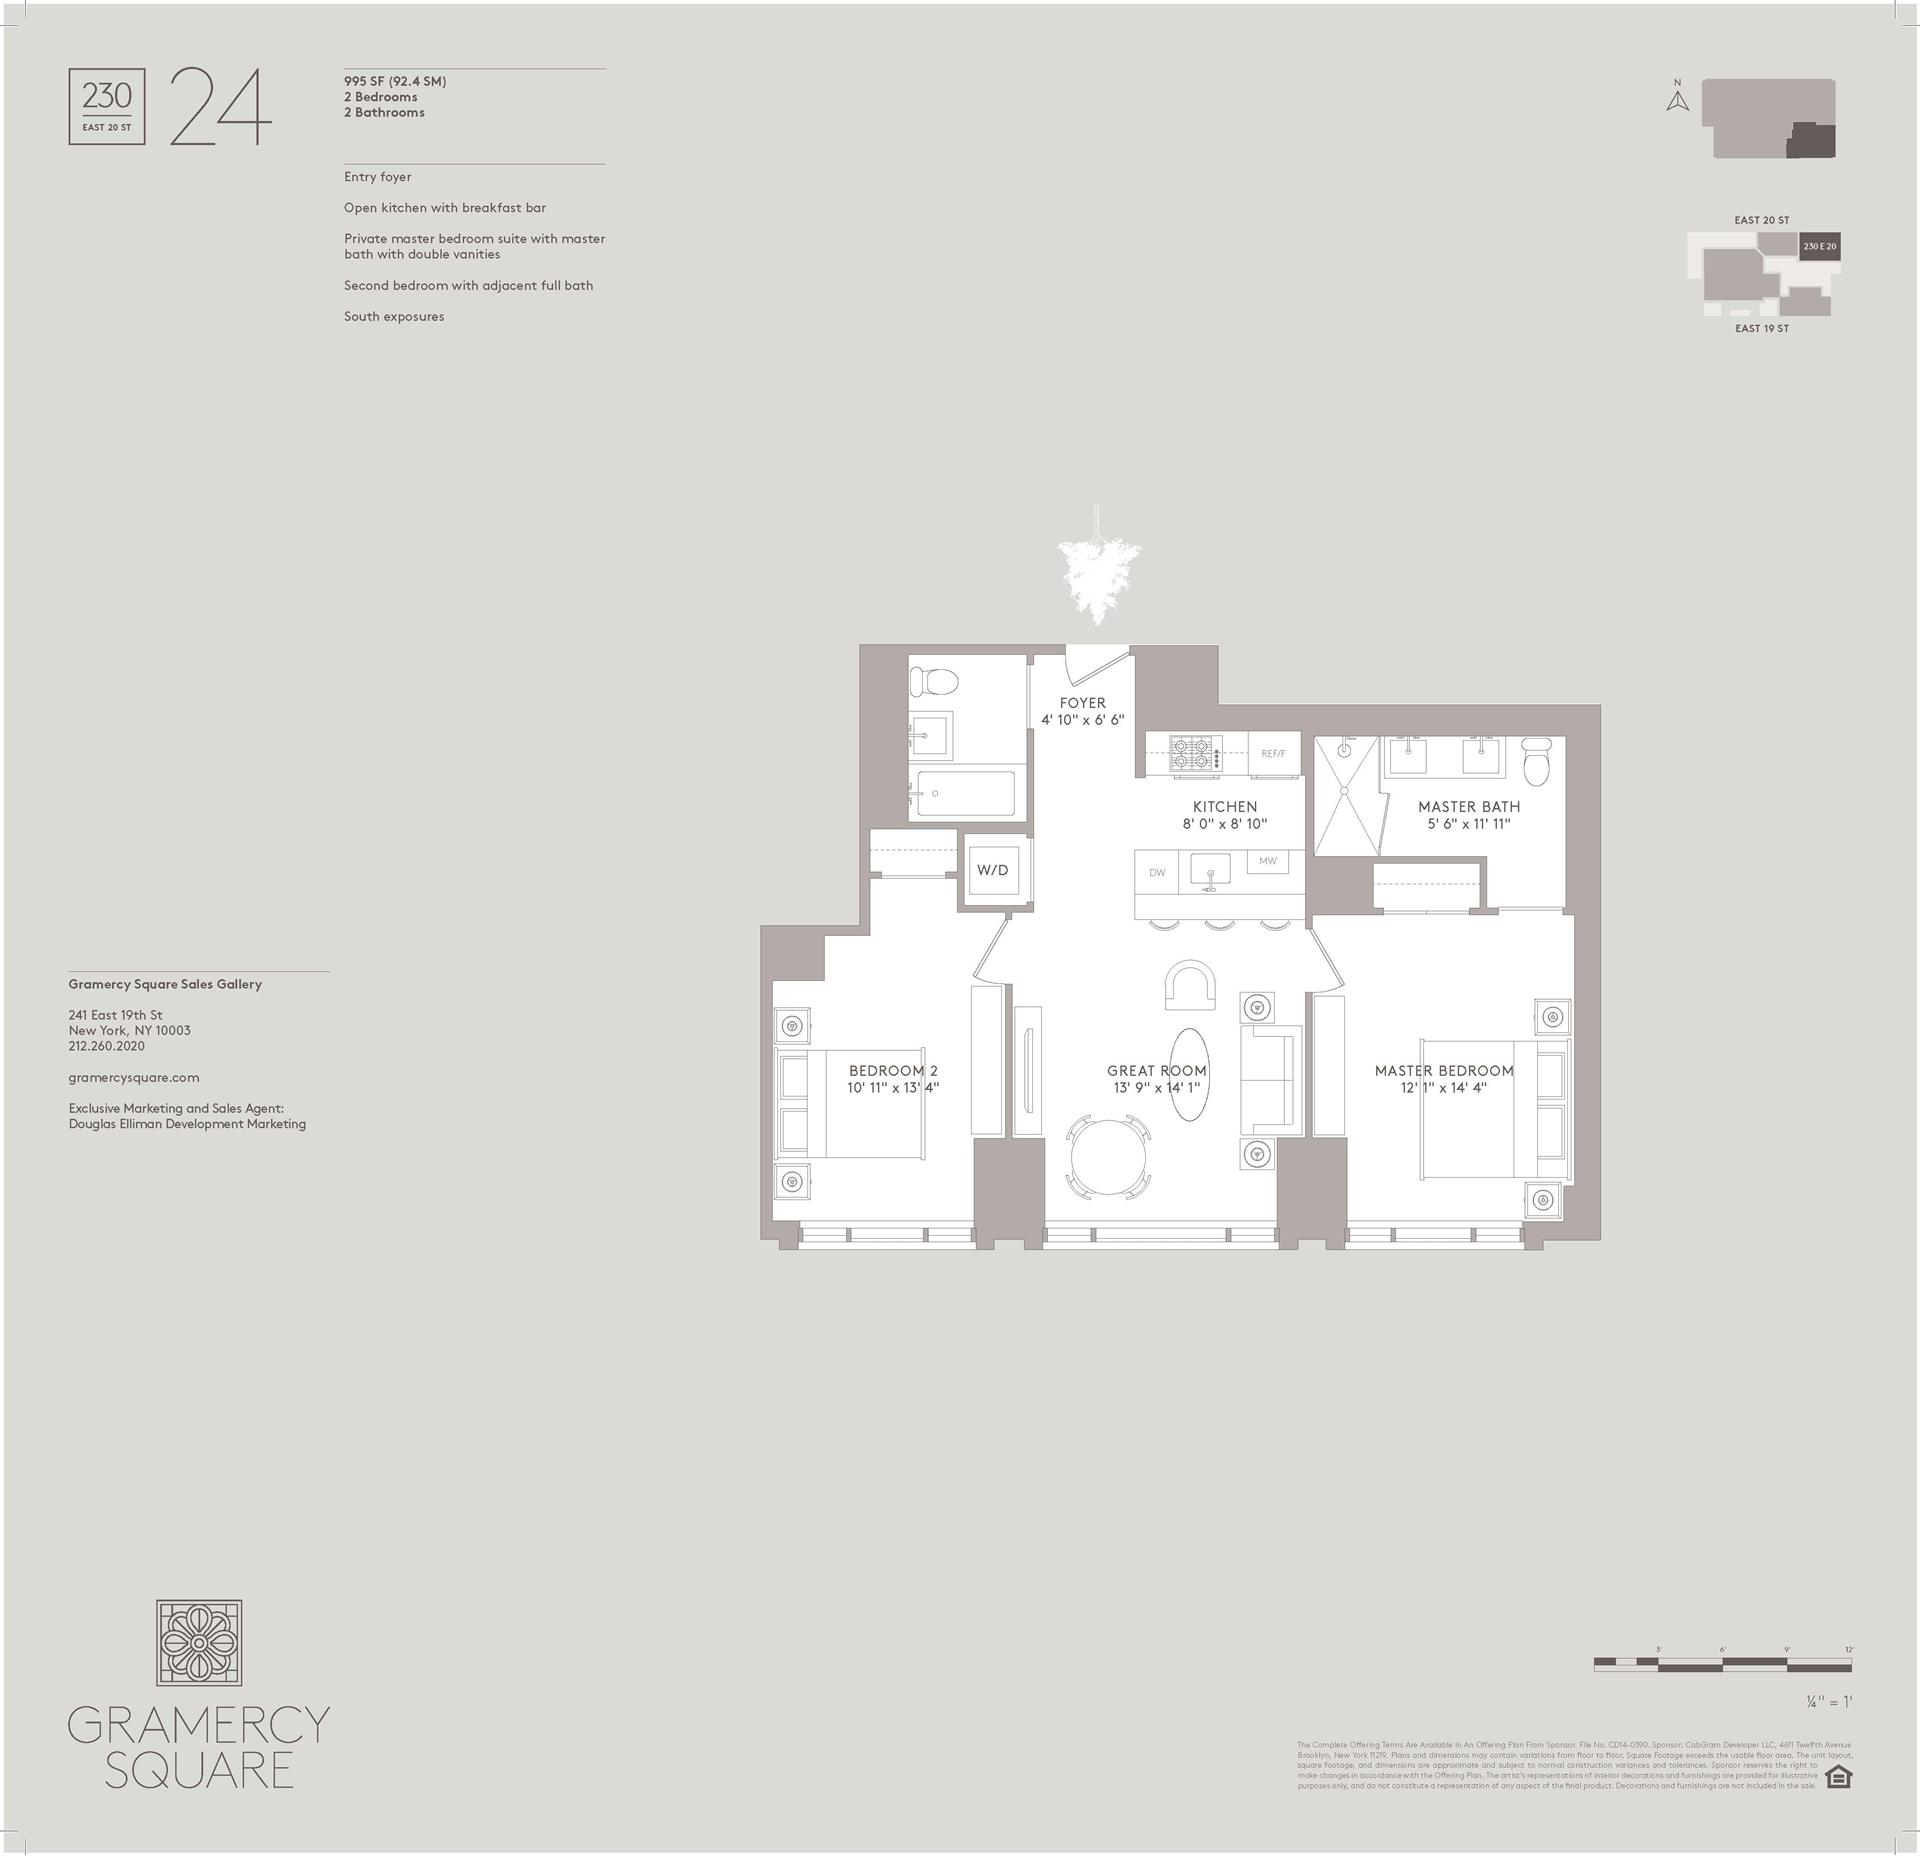 Floor plan of Gramercy Square, 230 East 20th St, 24 - Gramercy - Union Square, New York